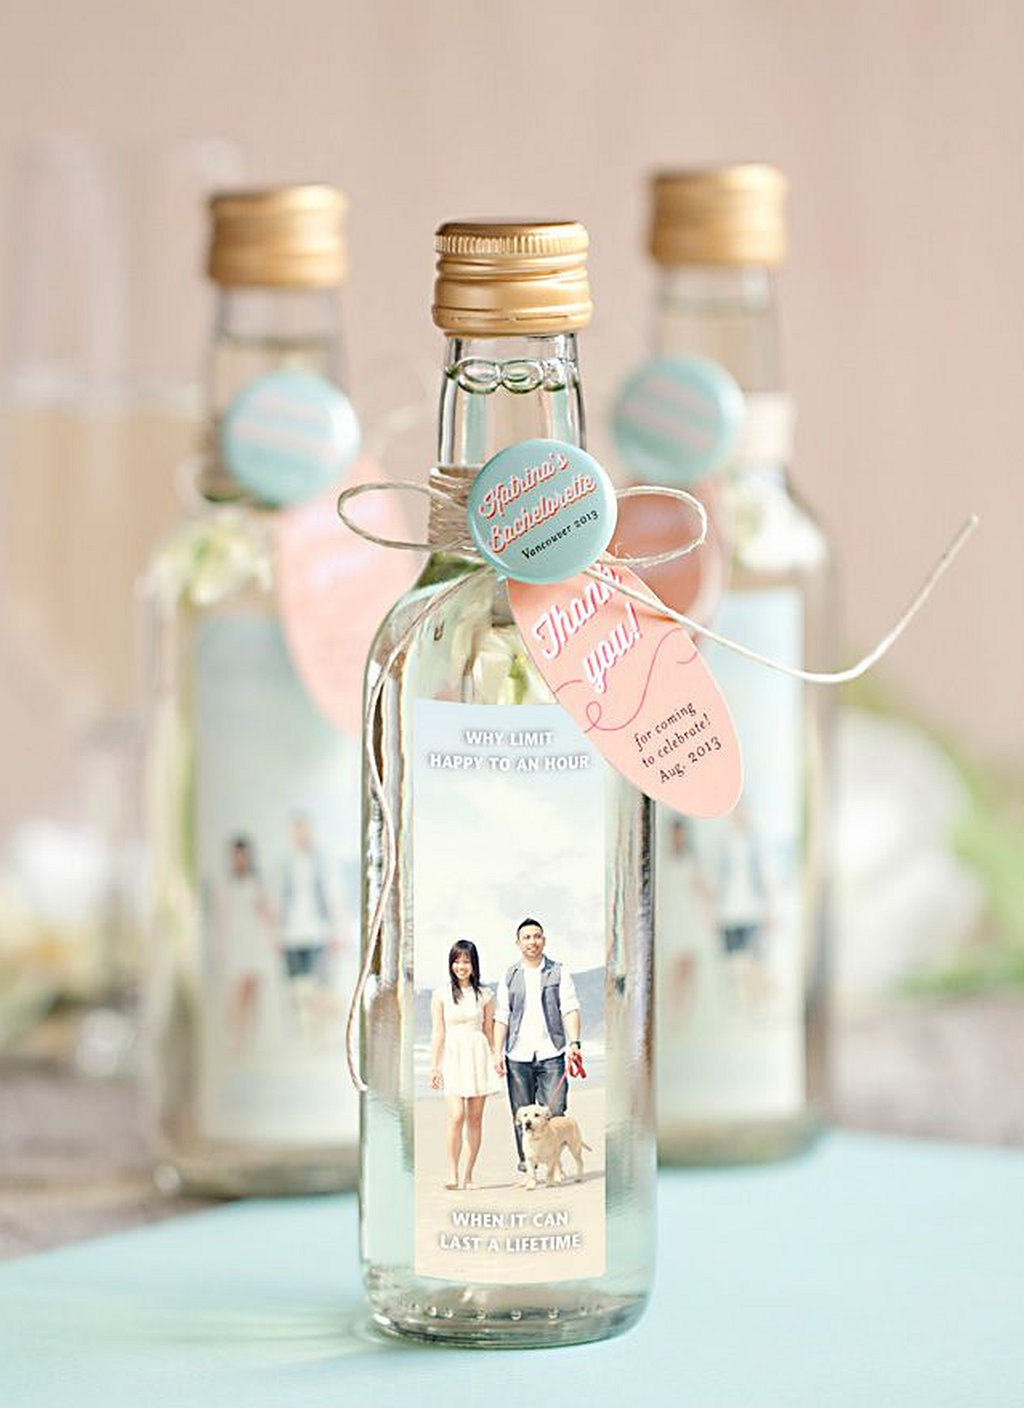 pin by wedding magazine on wedding gifts in 2018 | pinterest